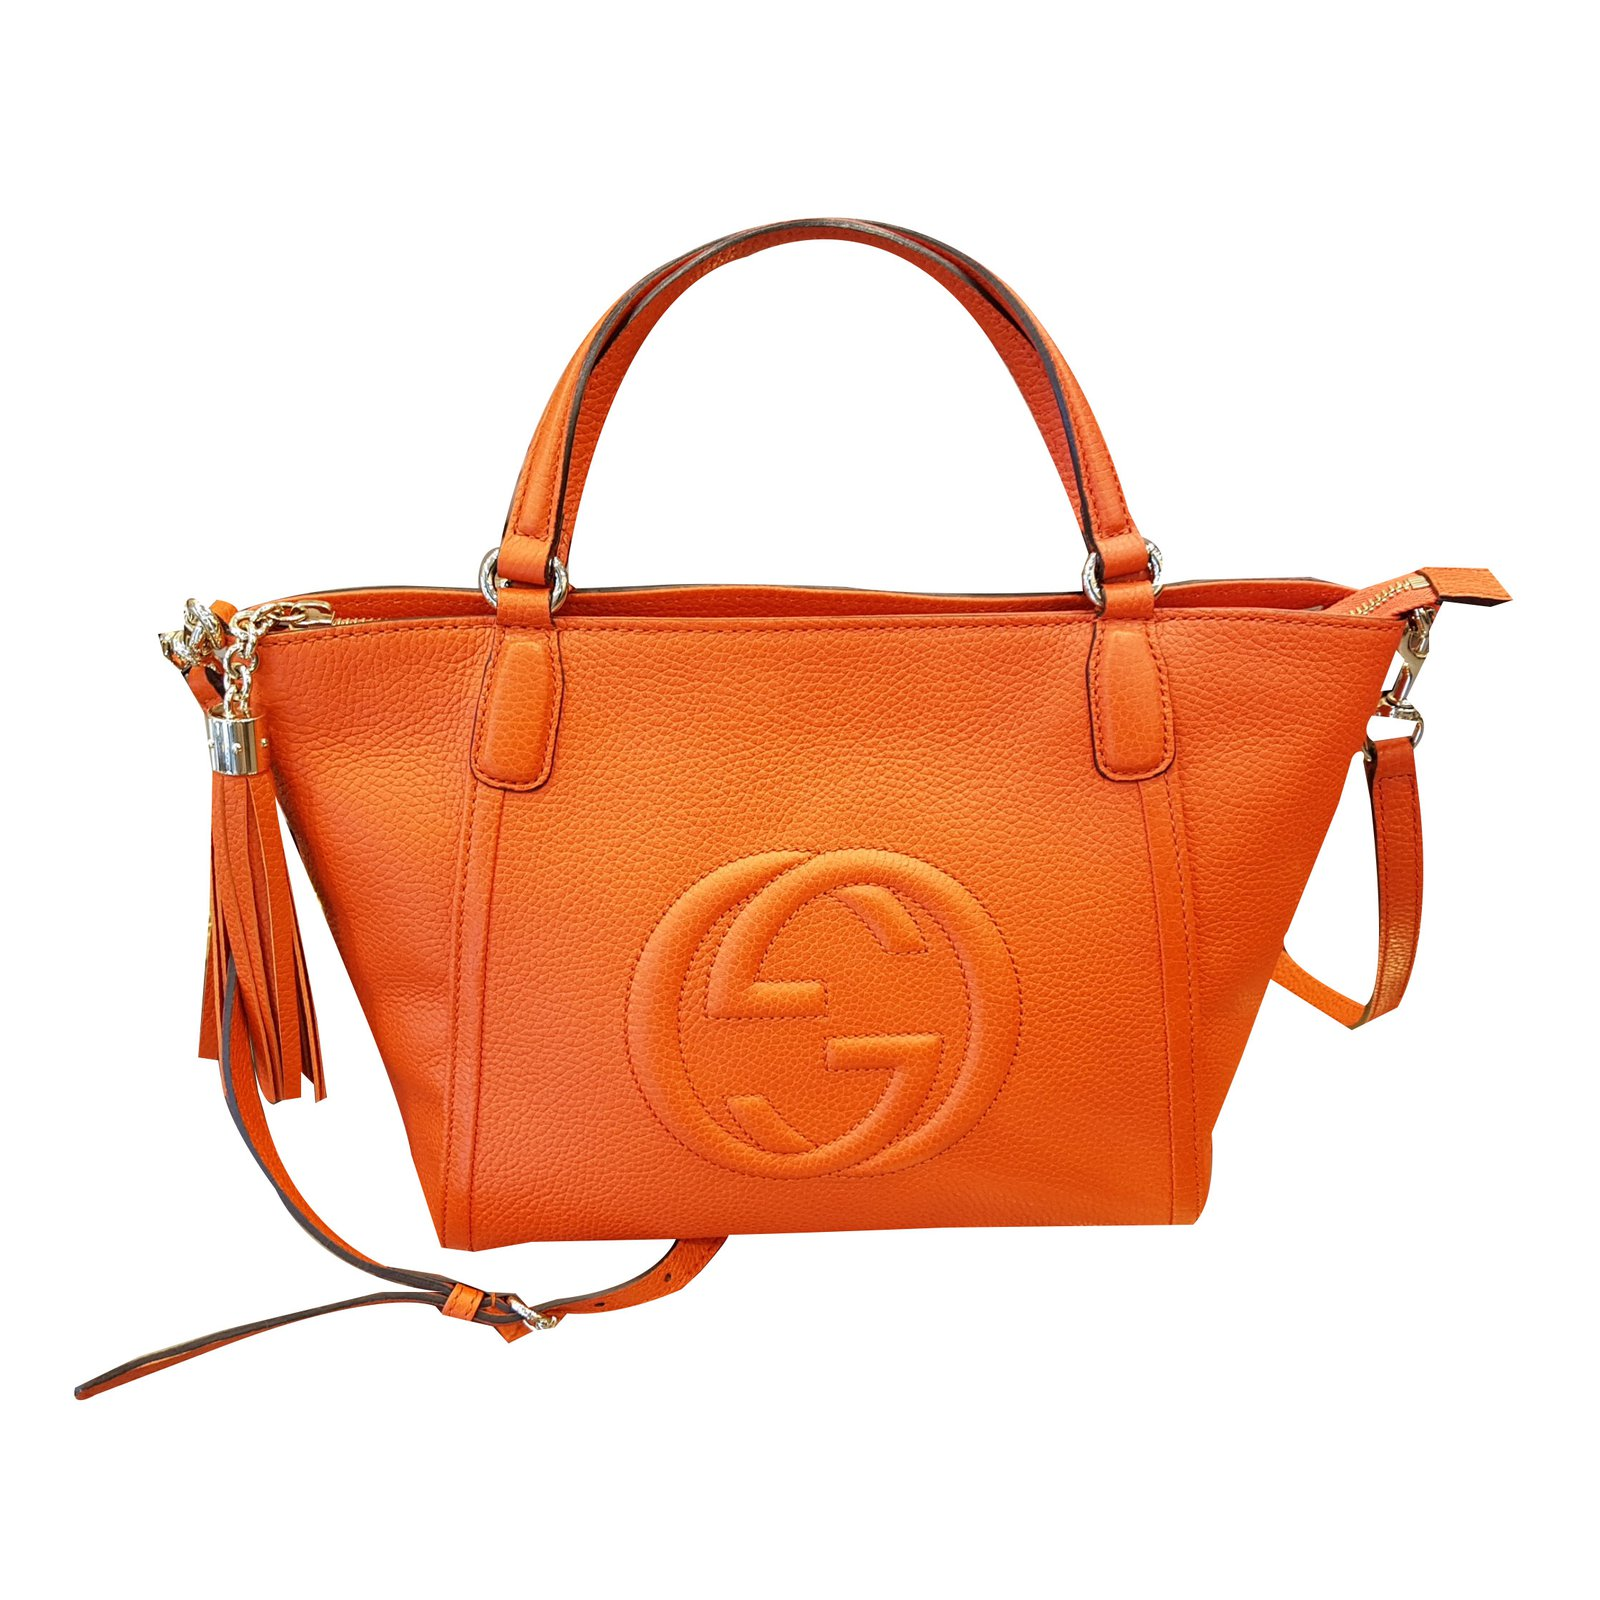 Gucci Borsa Soho Handbags Leather Orange Ref 47313